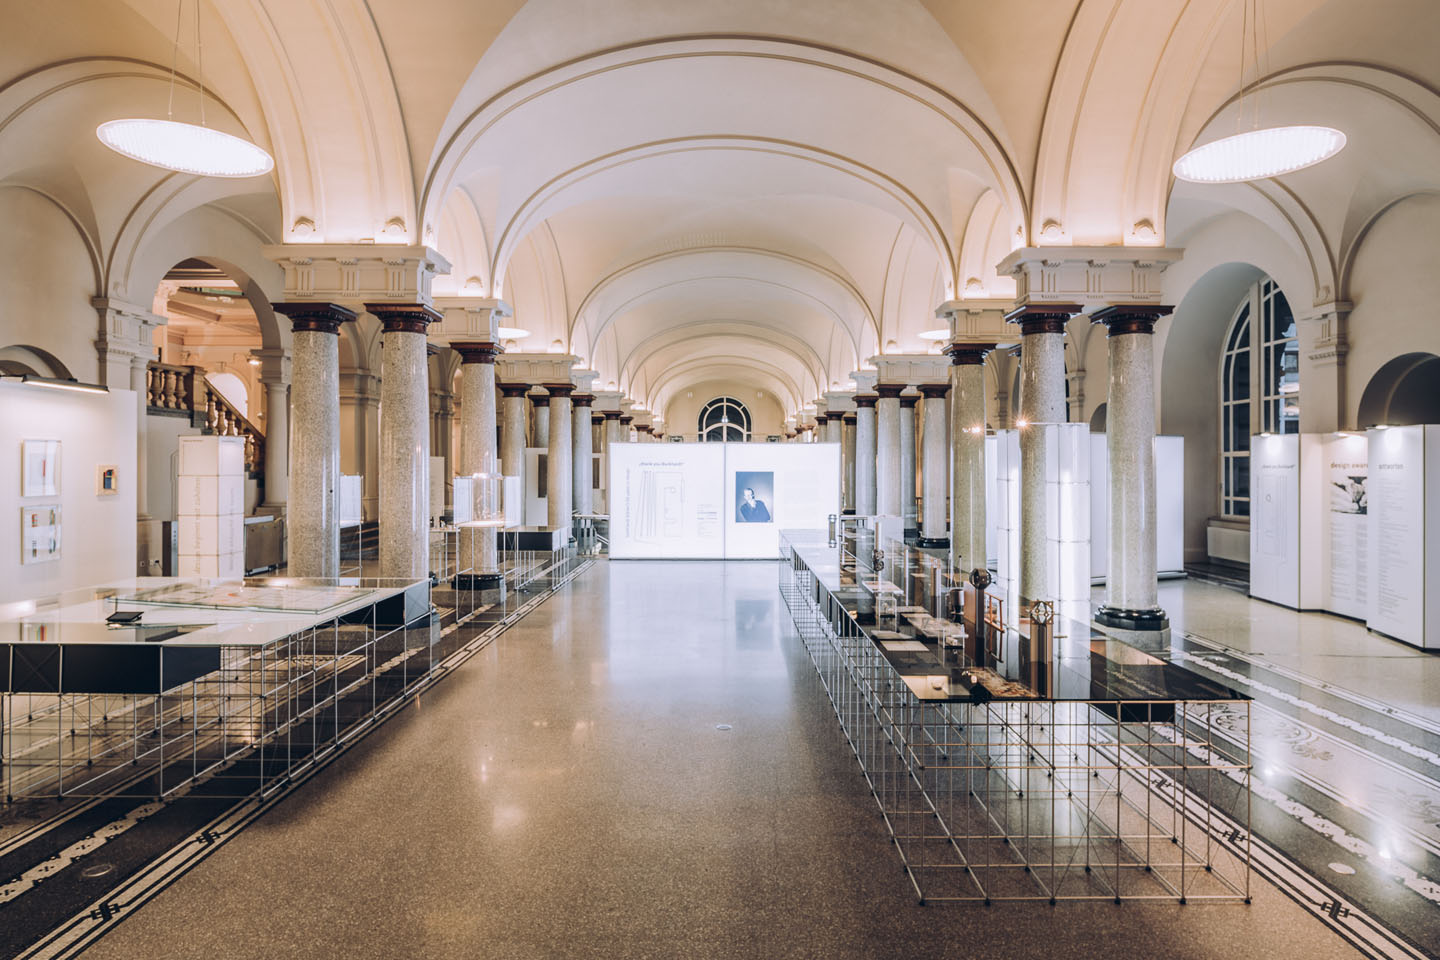 Design Center Baden-Württemberg hosted the exhibition